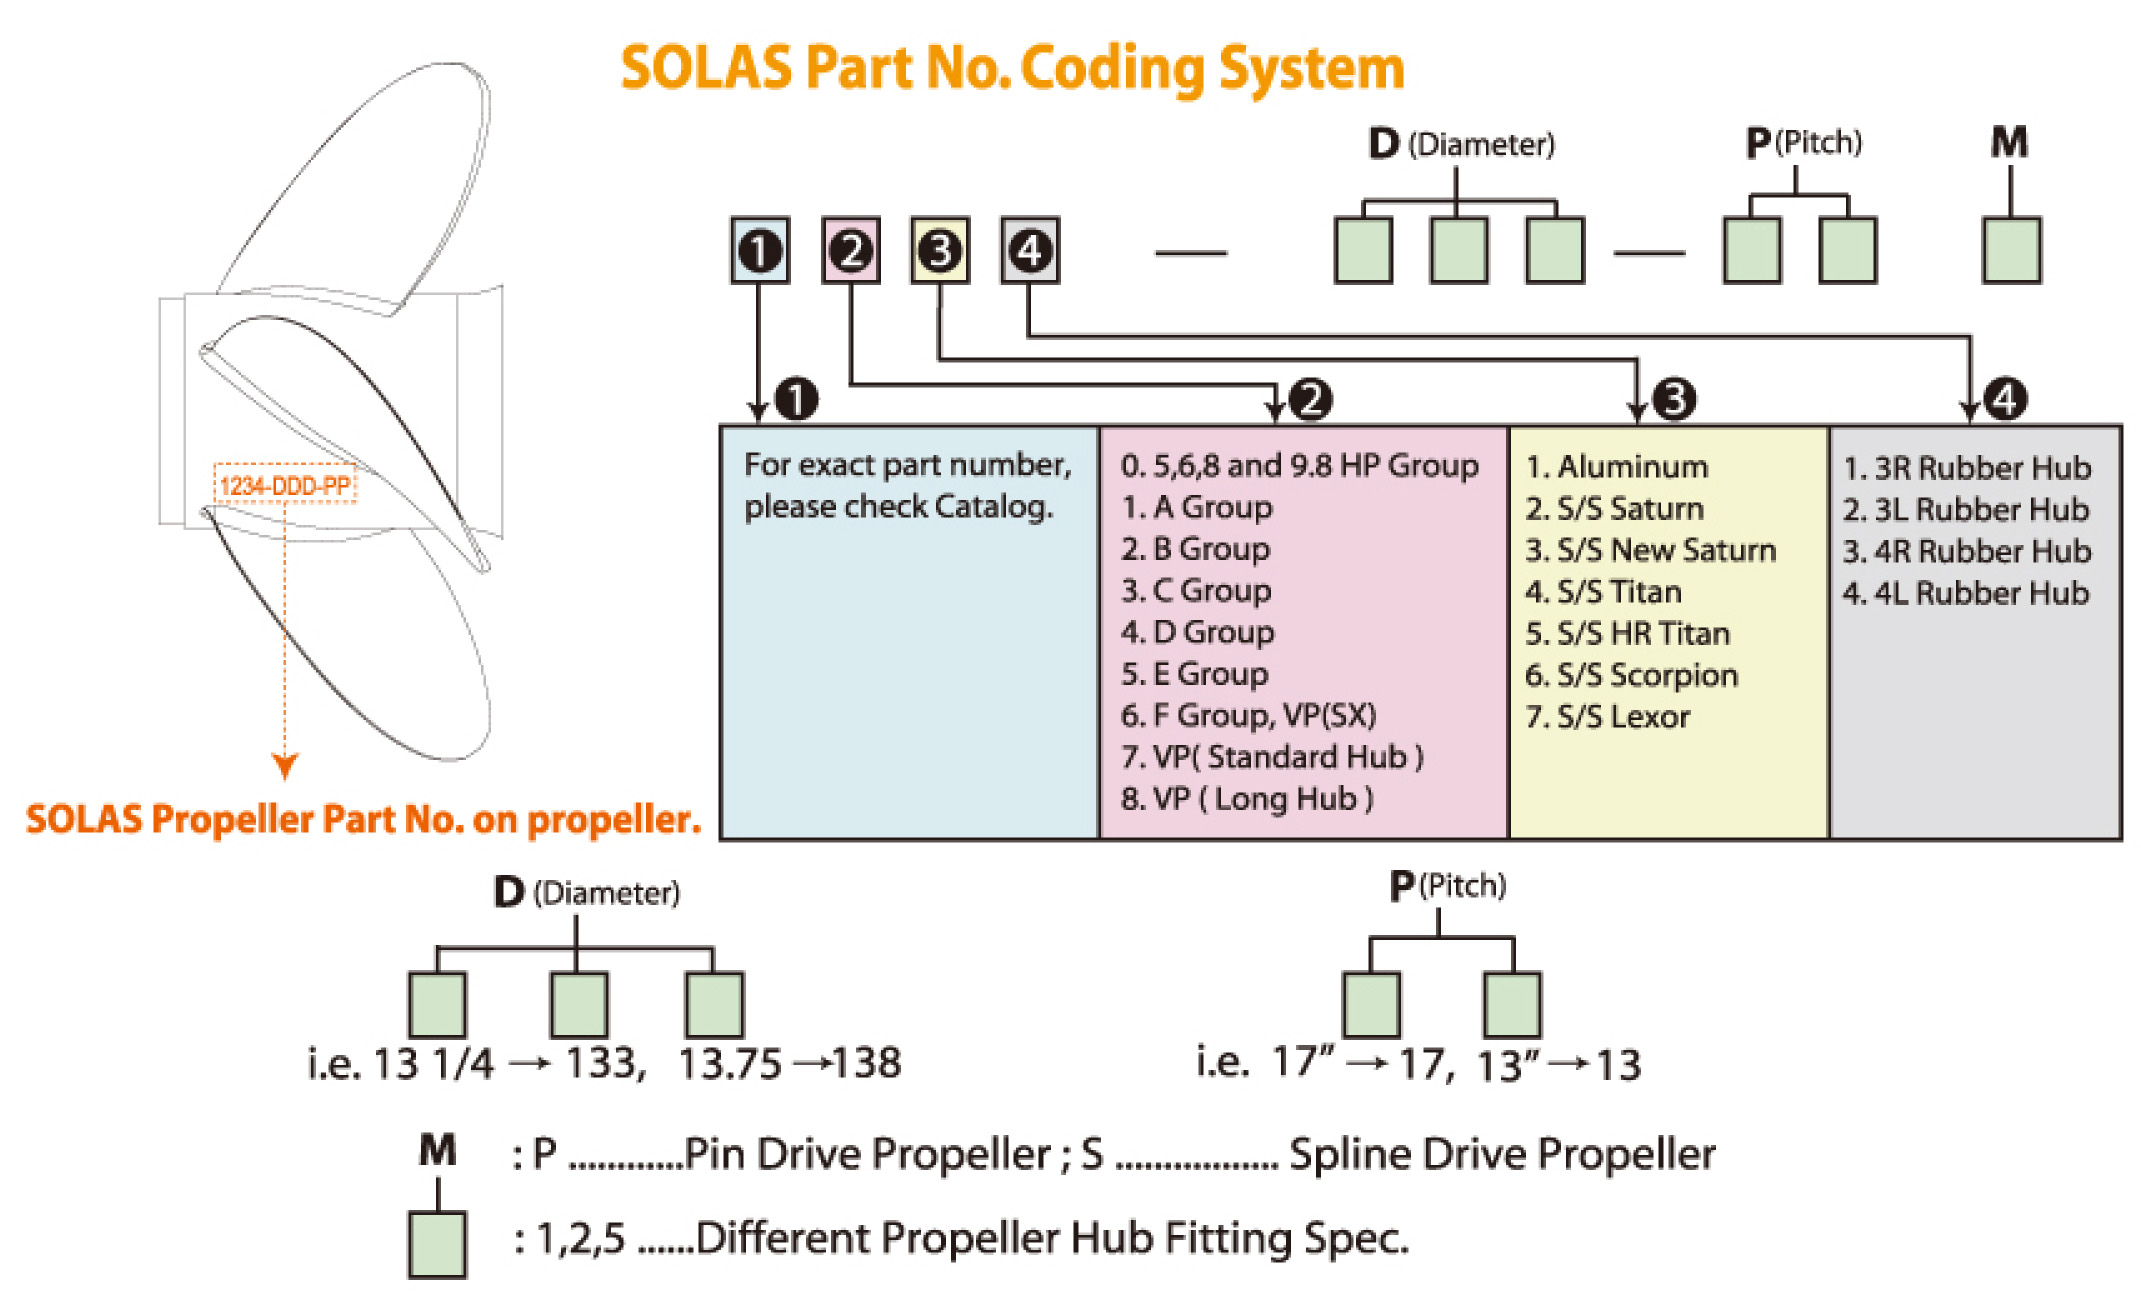 Parts Coding System